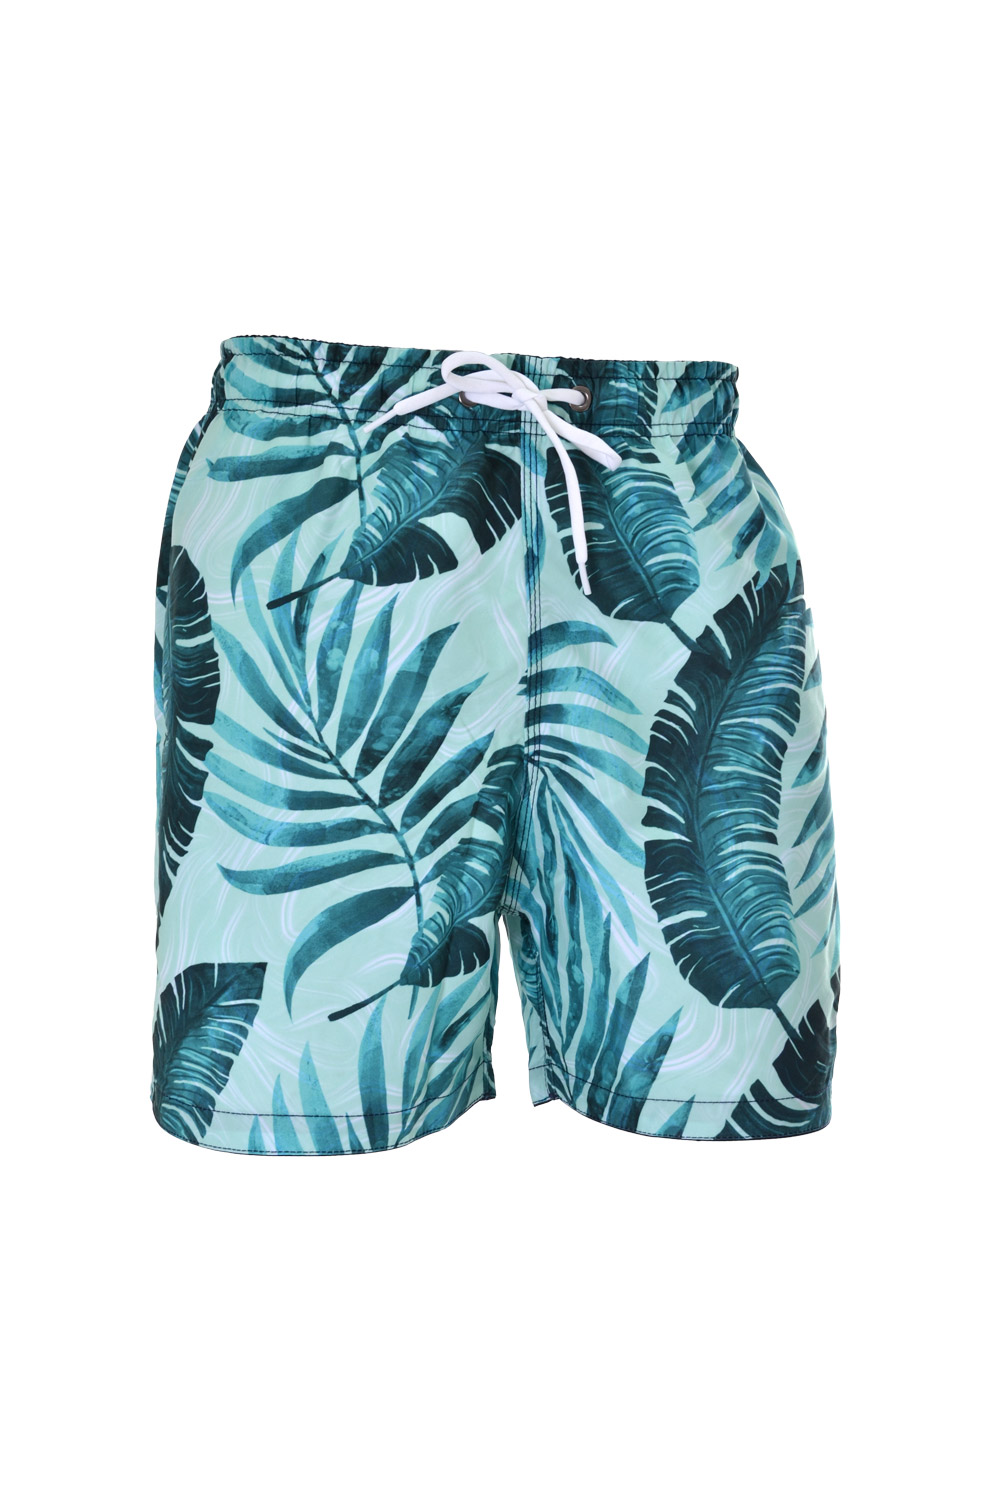 SHORTS MARINE POLIESTER CONCEPTS ESTAMPA AMAZONIA